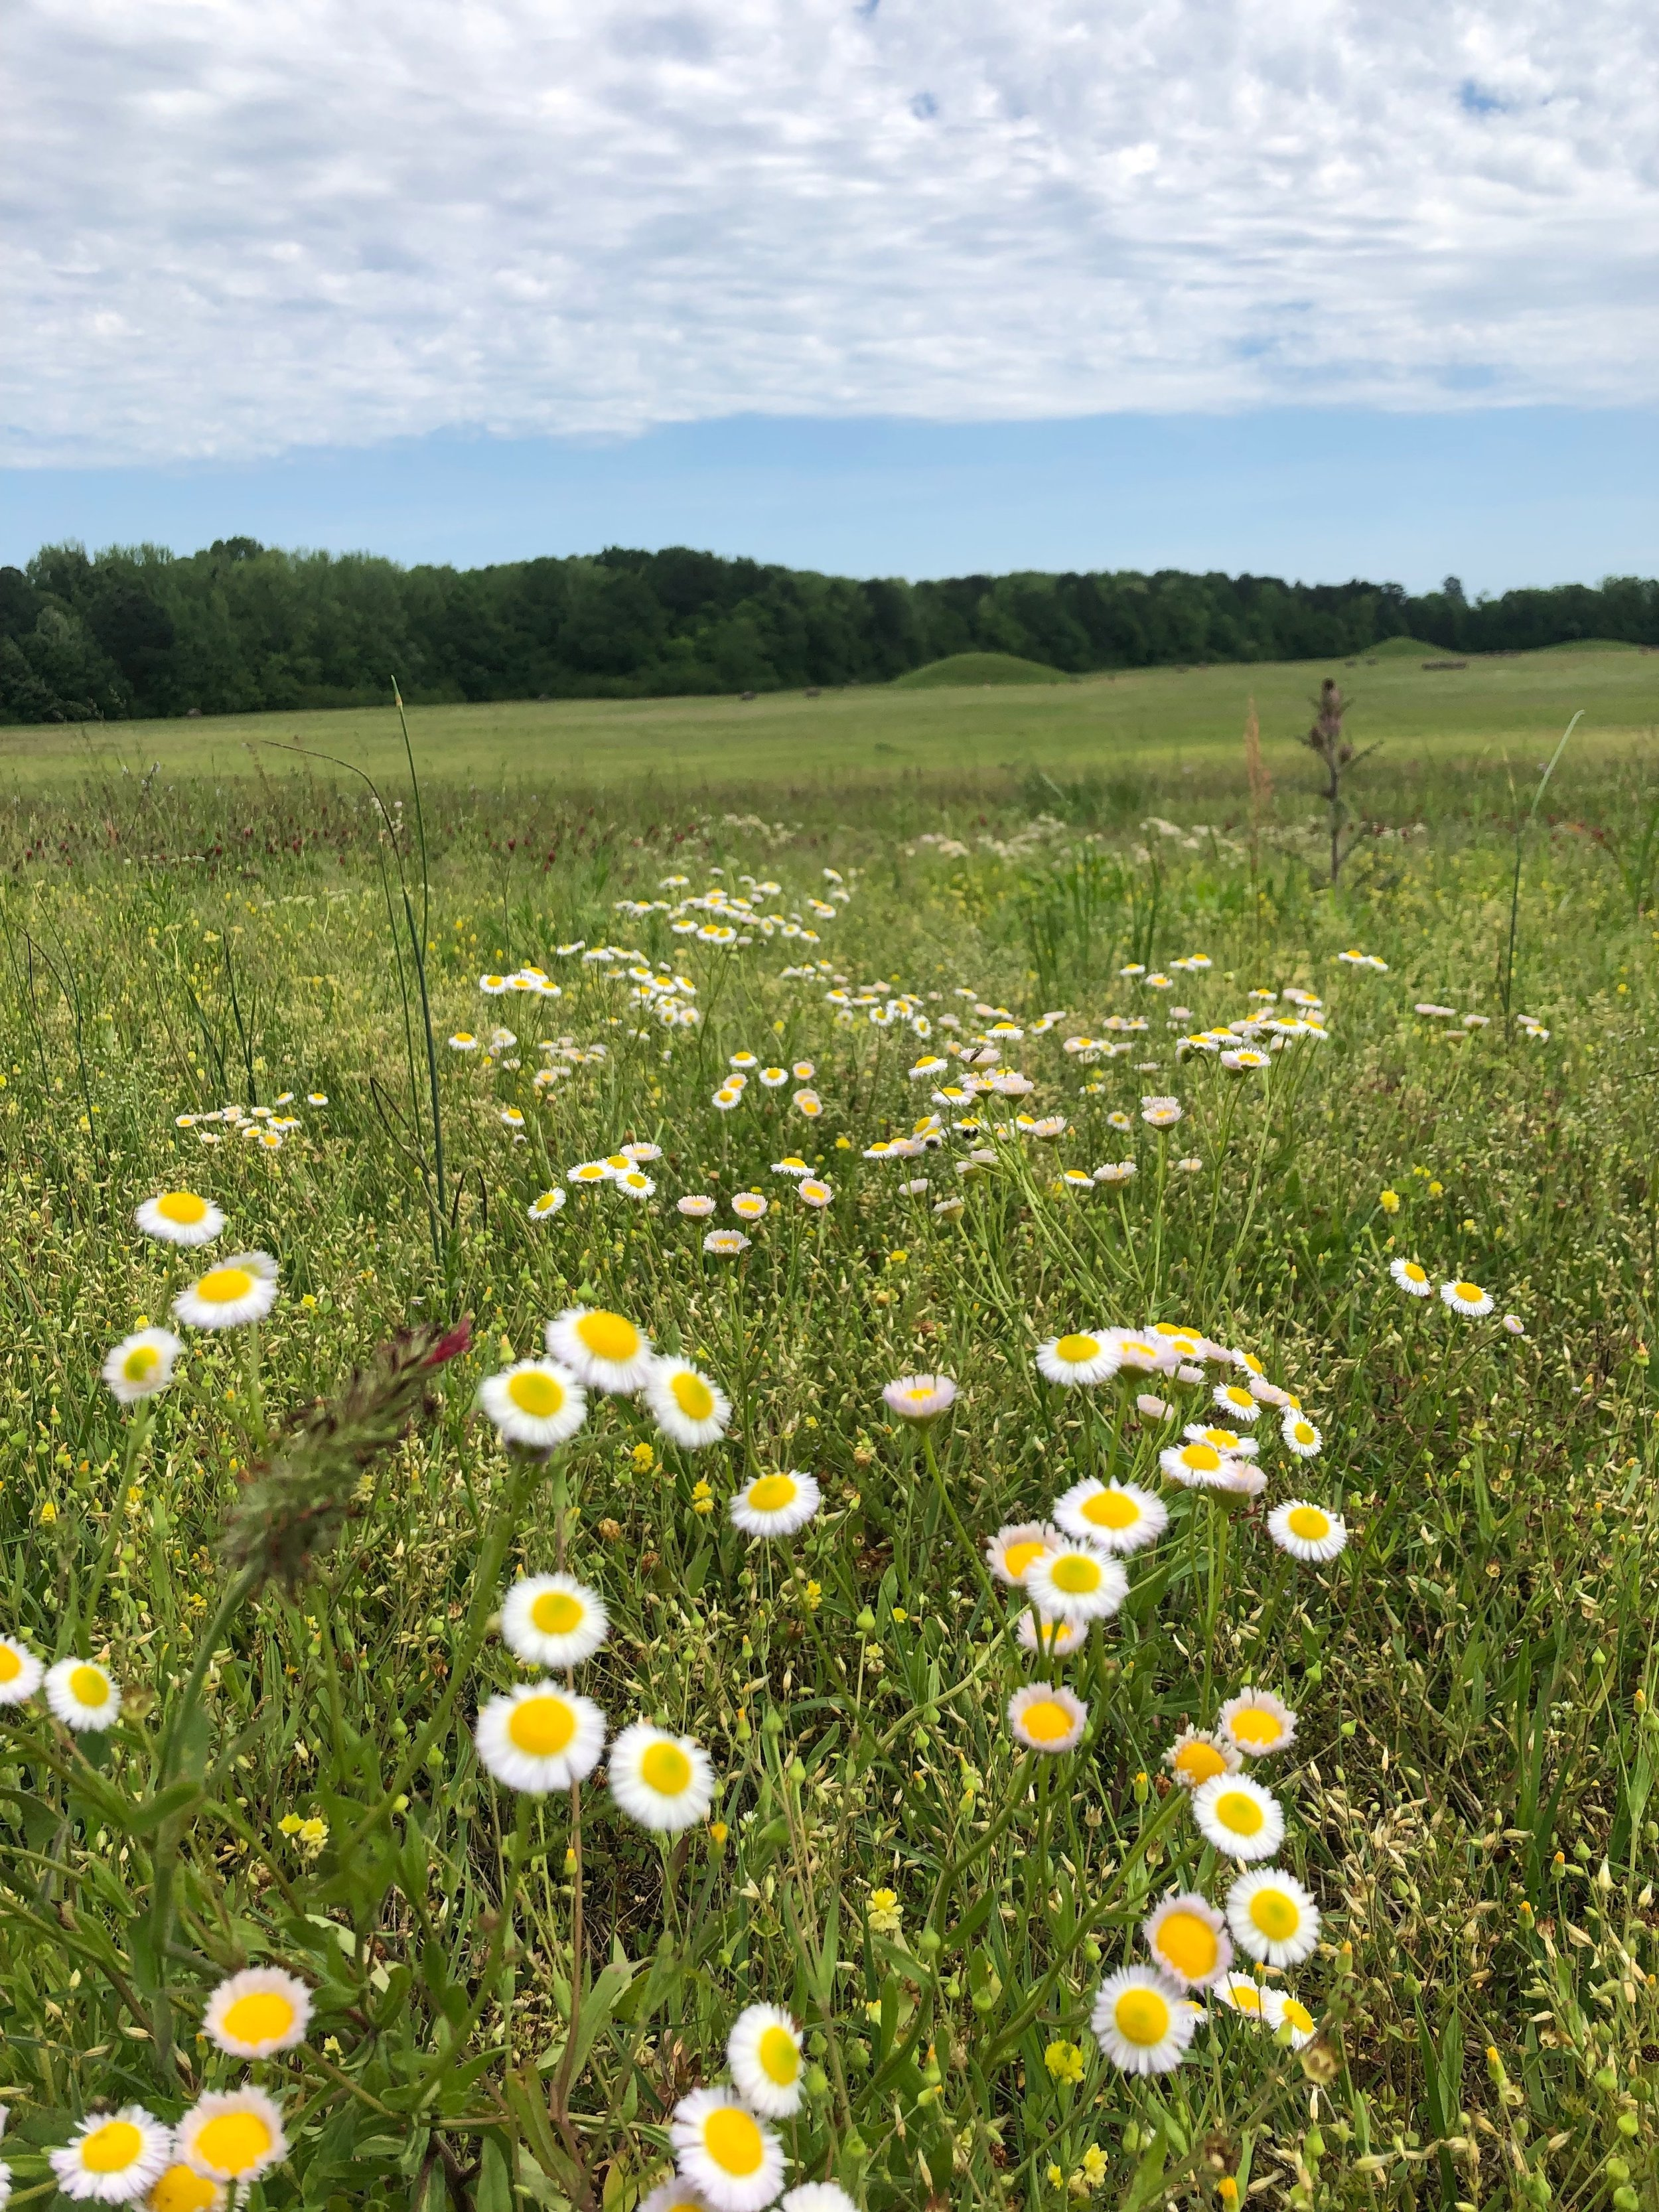 Wildflowers bloom at the Pharr Mounds in Northern Mississippi. This site is sacred to our people.